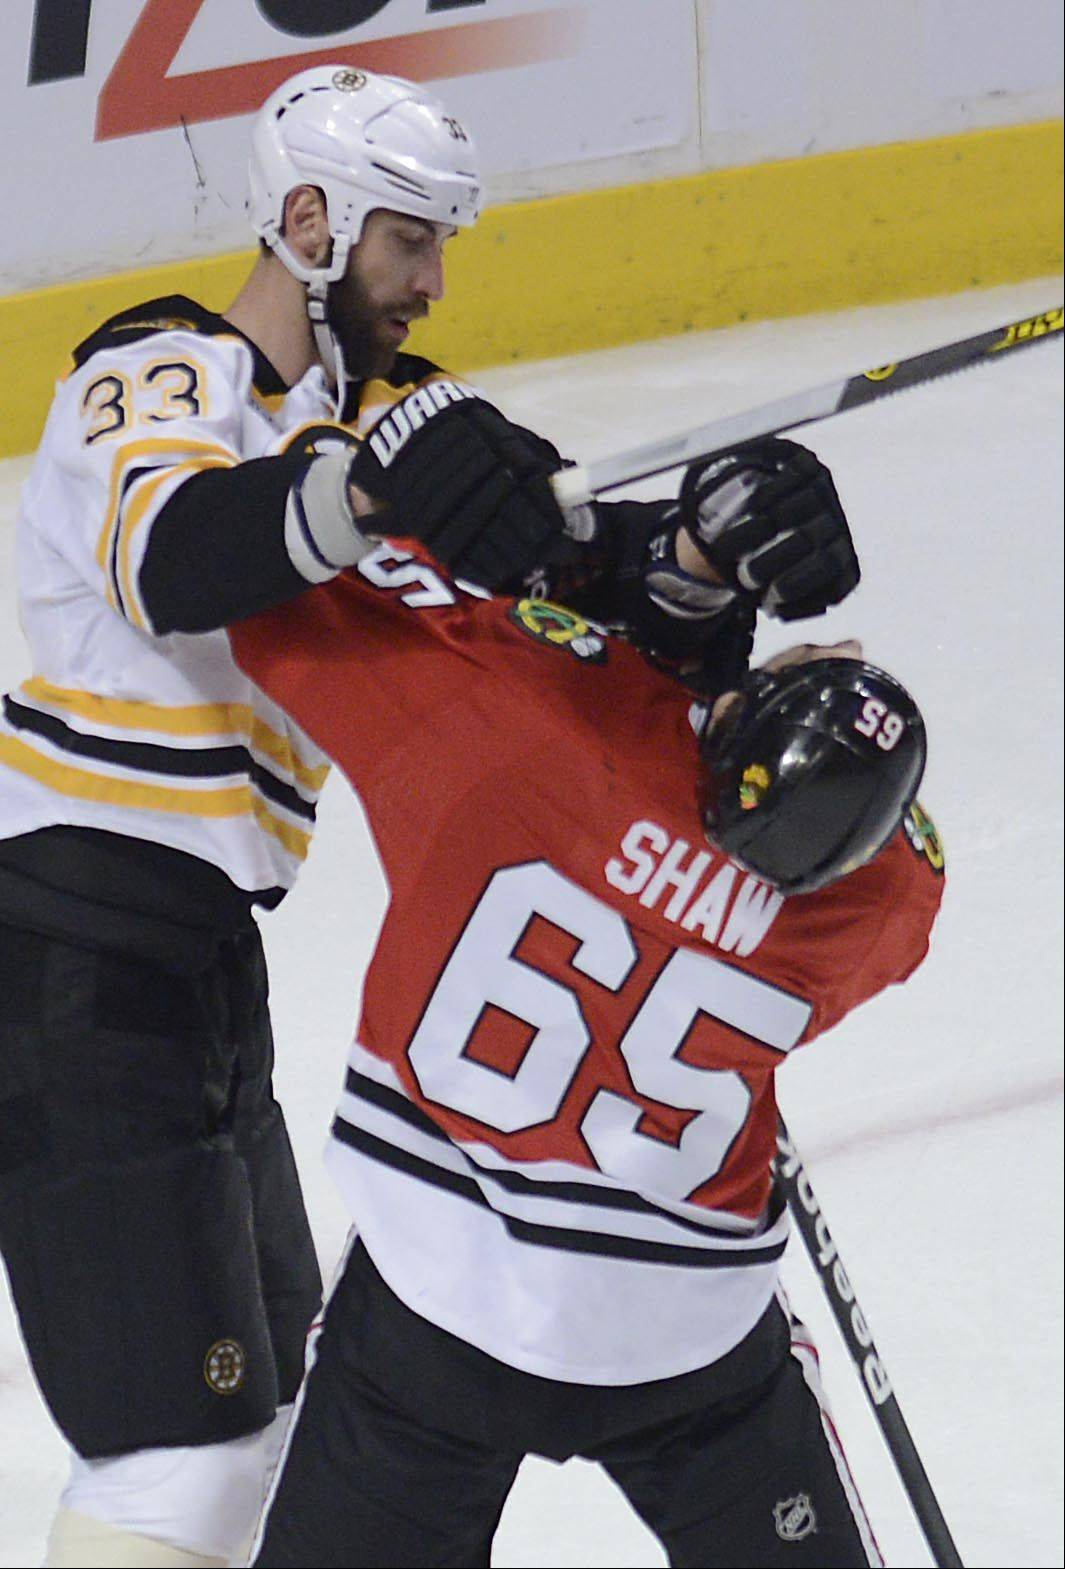 Chicago Blackhawks center Andrew Shaw gets hit in the face by Boston Bruins defenseman Zdeno Chara in the first period.